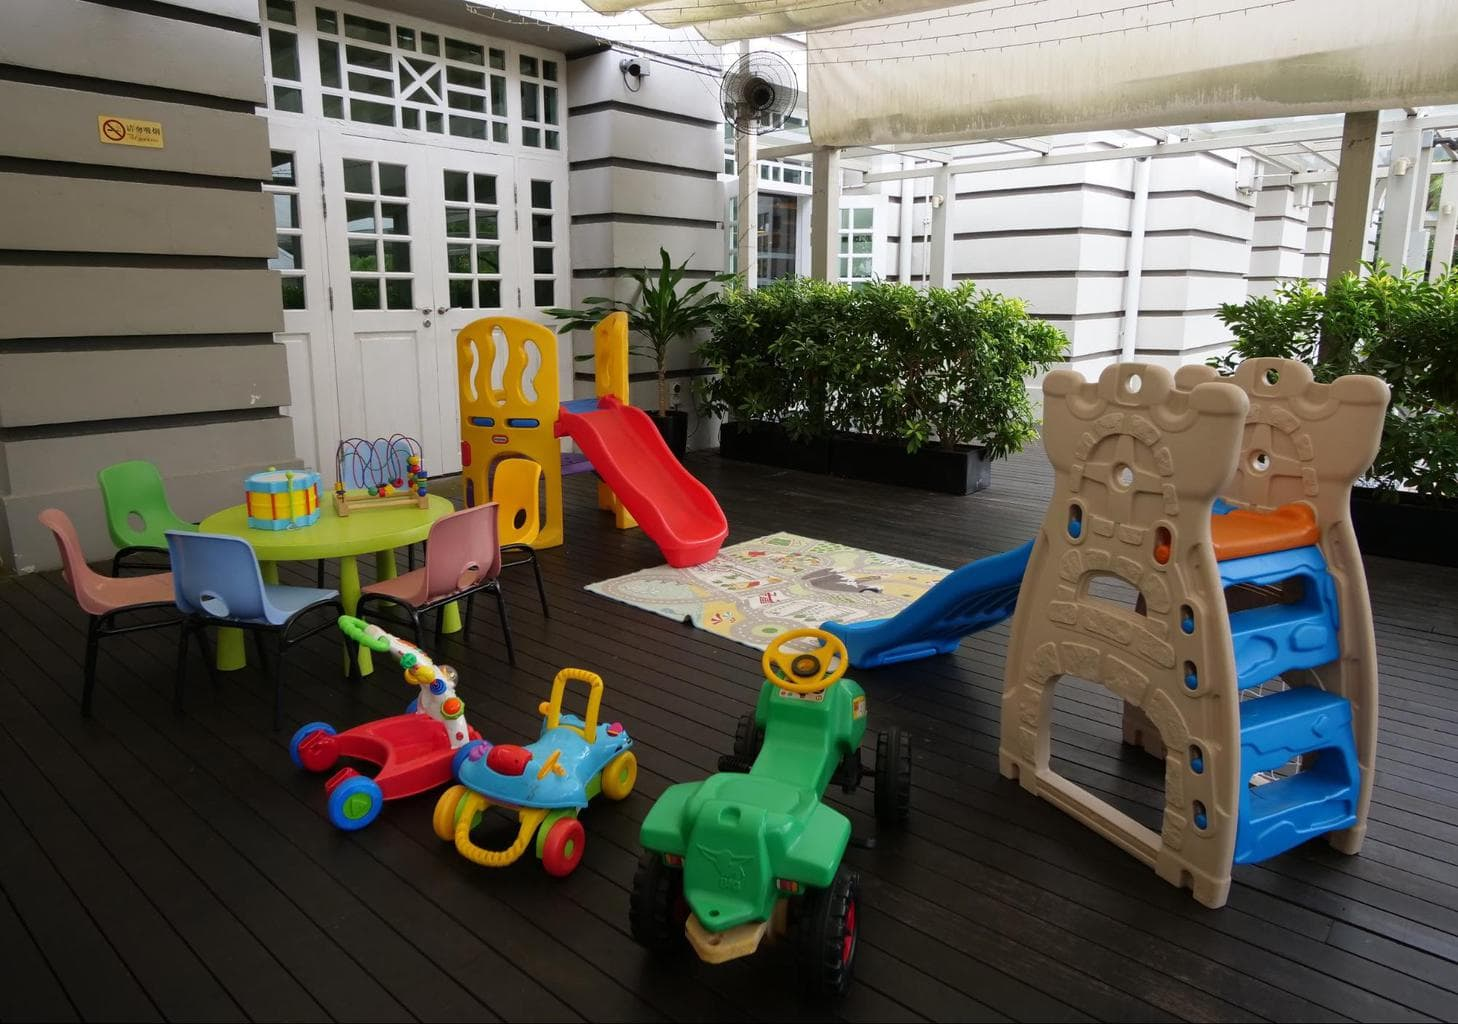 The kids play area at Hotel Fort Canning